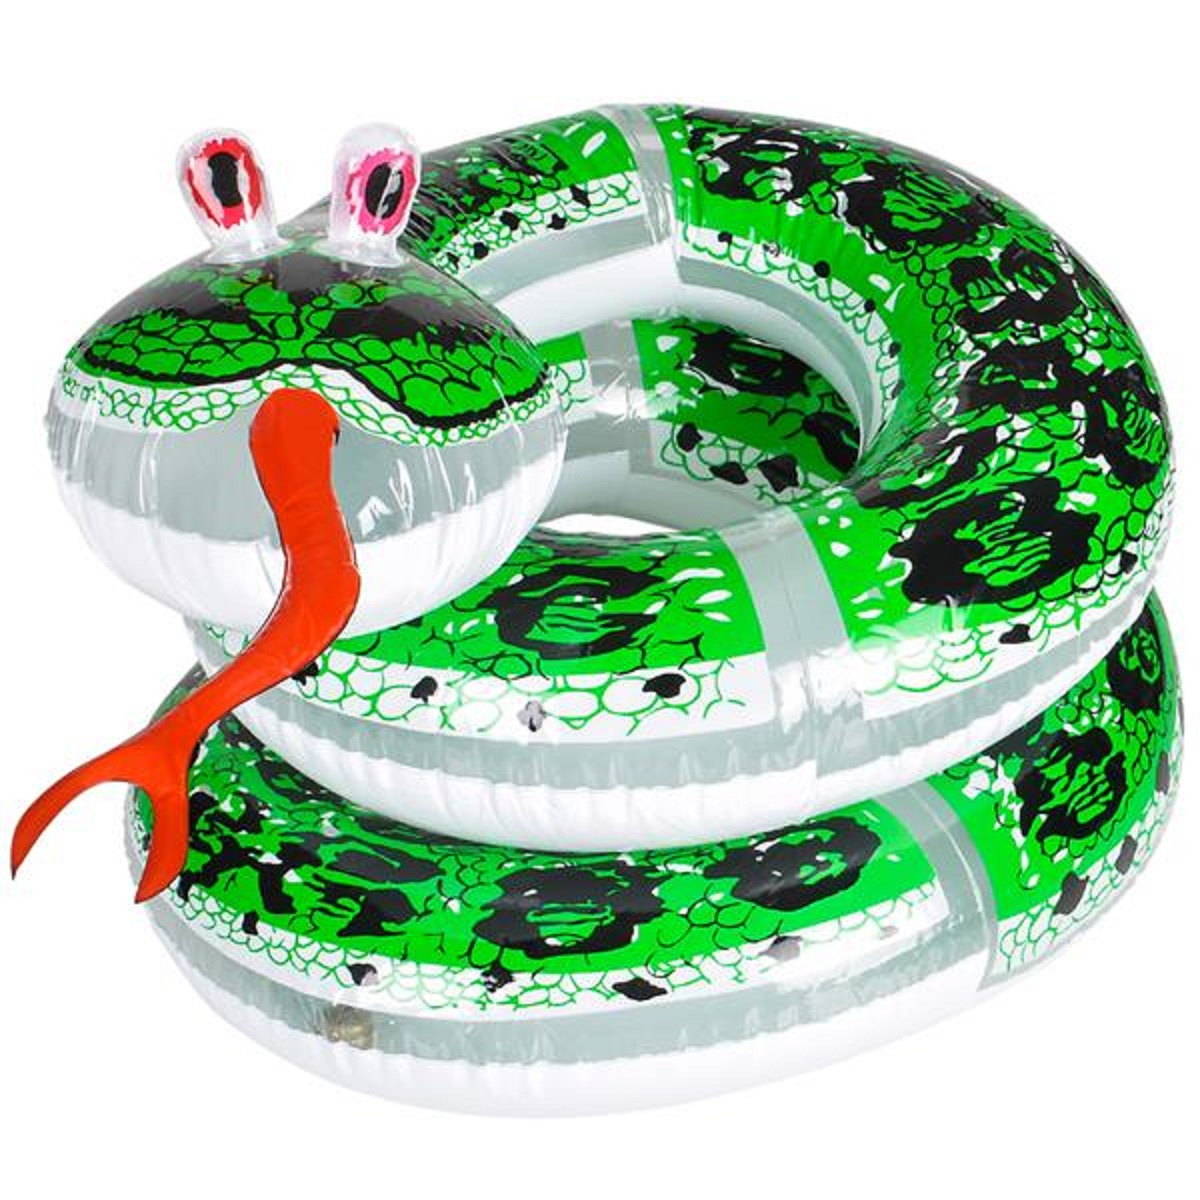 60  Giant Inflatable Coil Snake Python Zoo Animal Beach Pool Party Float Fun Toy  sc 1 st  eBay & 60